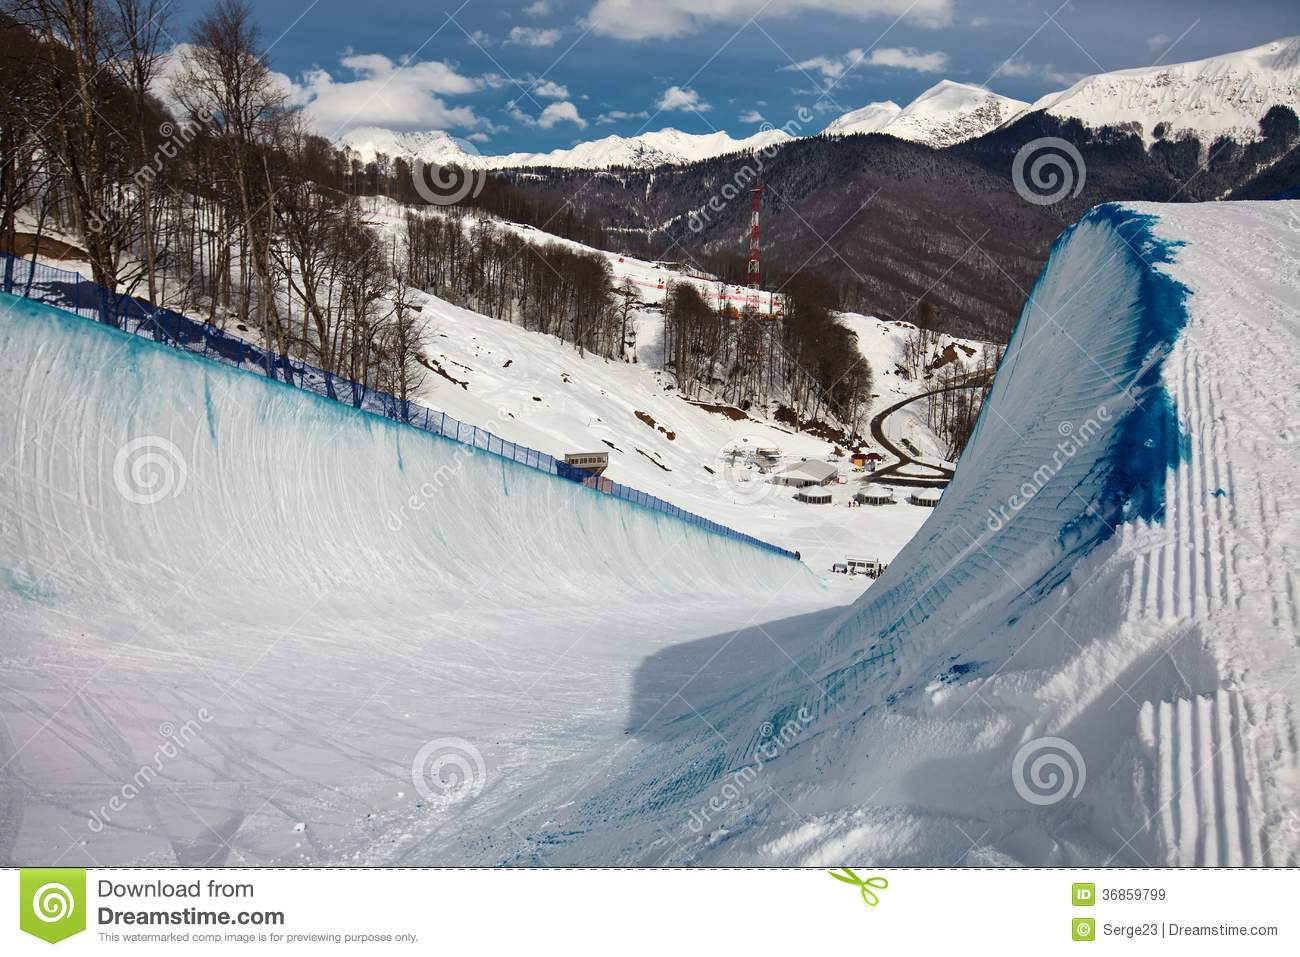 Venue Winter Olympic Games in Sochi in 2014 - with the infrastructure